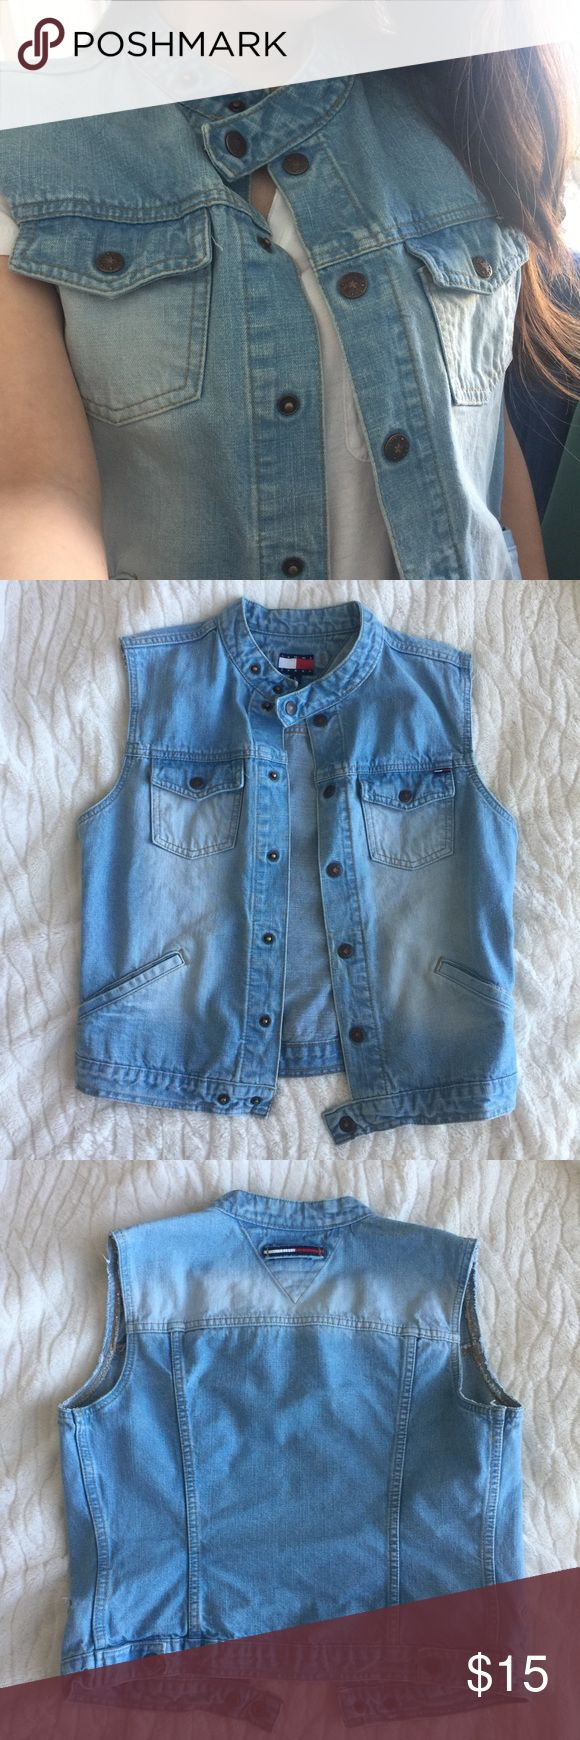 Tommy Jeans vest Barely worn Tommy jean vest. Size L girls so it fits like a size small for me perfectly. Tommy Hilfiger Jackets & Coats Vests